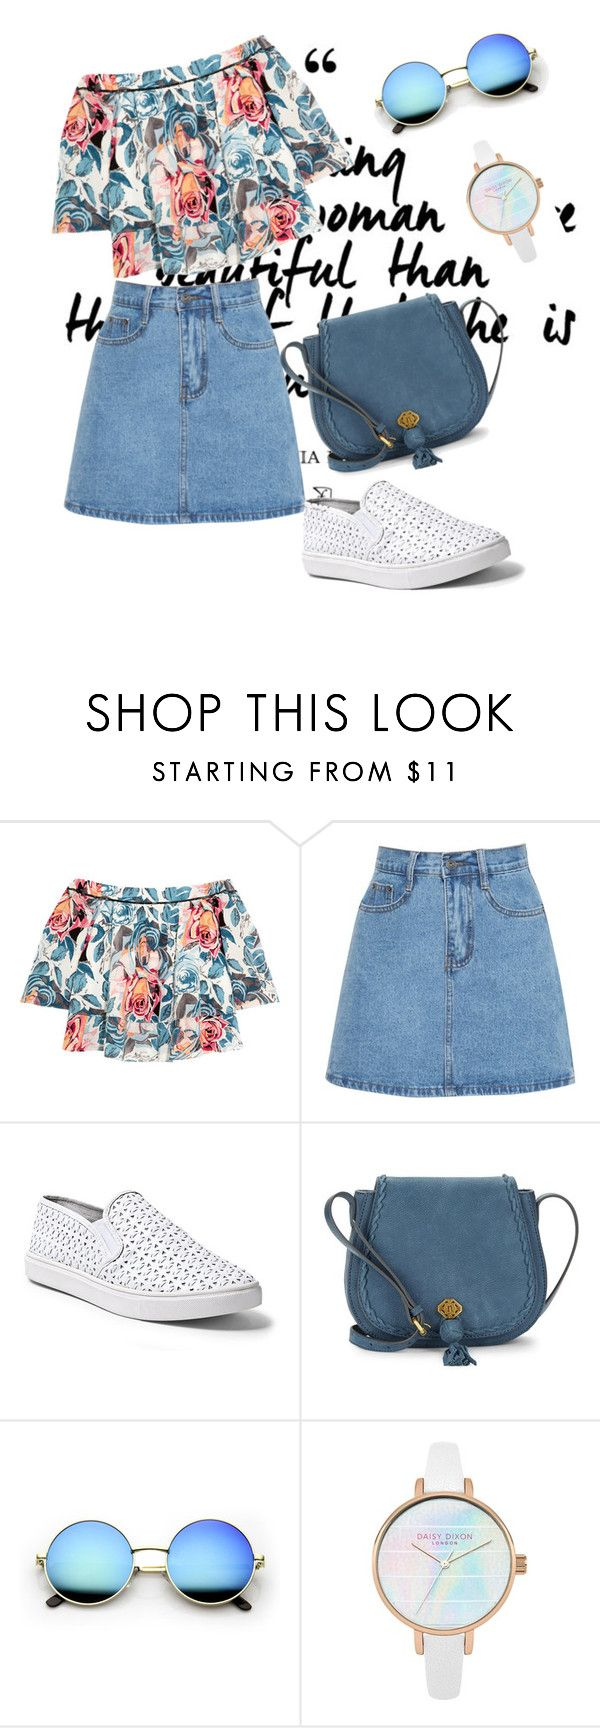 """""""Casual"""" by megeller ❤ liked on Polyvore featuring Elizabeth and James, Steve Madden and Nanette Lepore"""